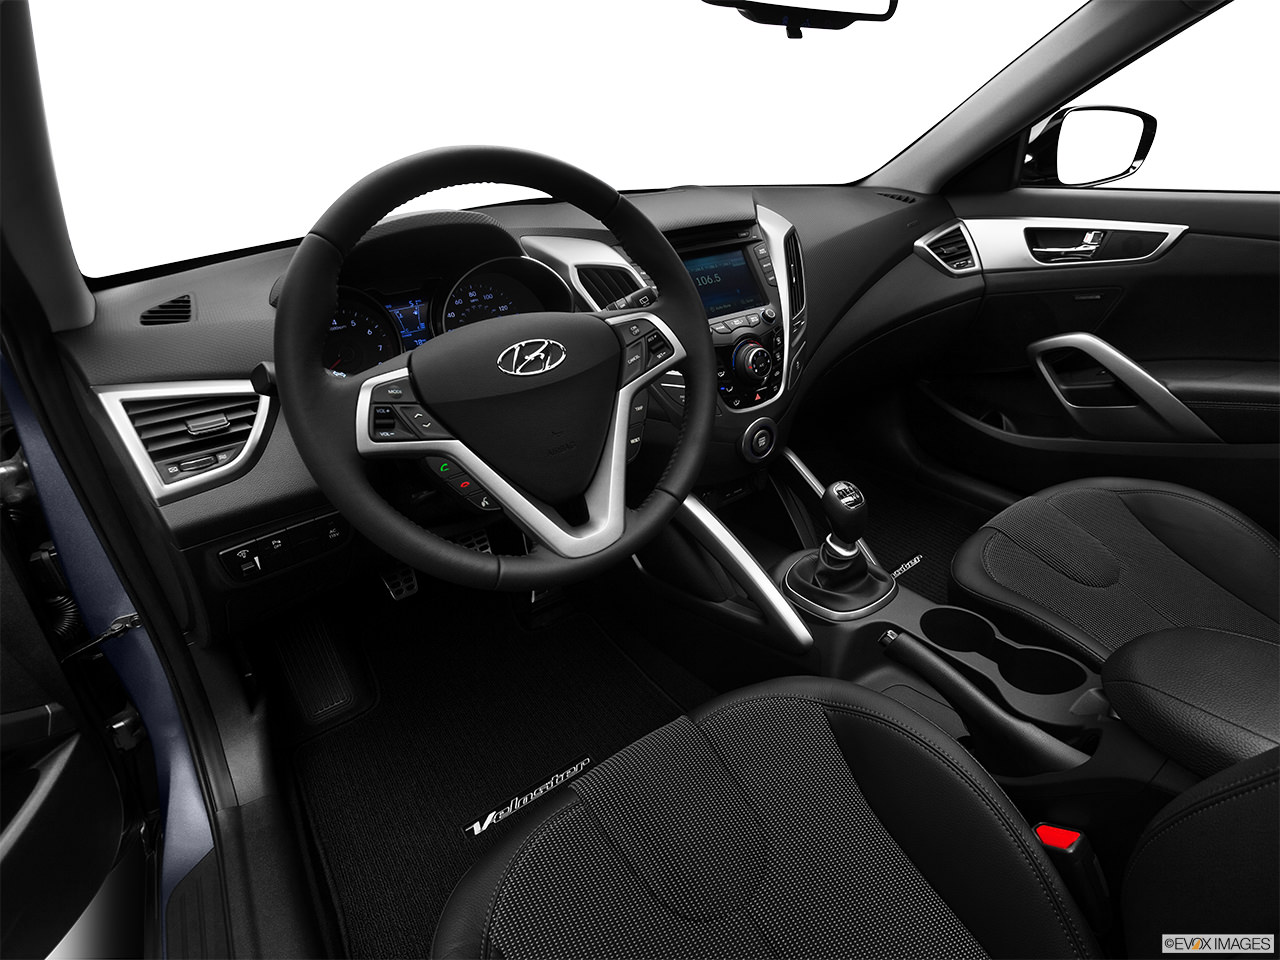 A buyer s guide to the 2012 hyundai veloster - Hyundai veloster interior accessories ...